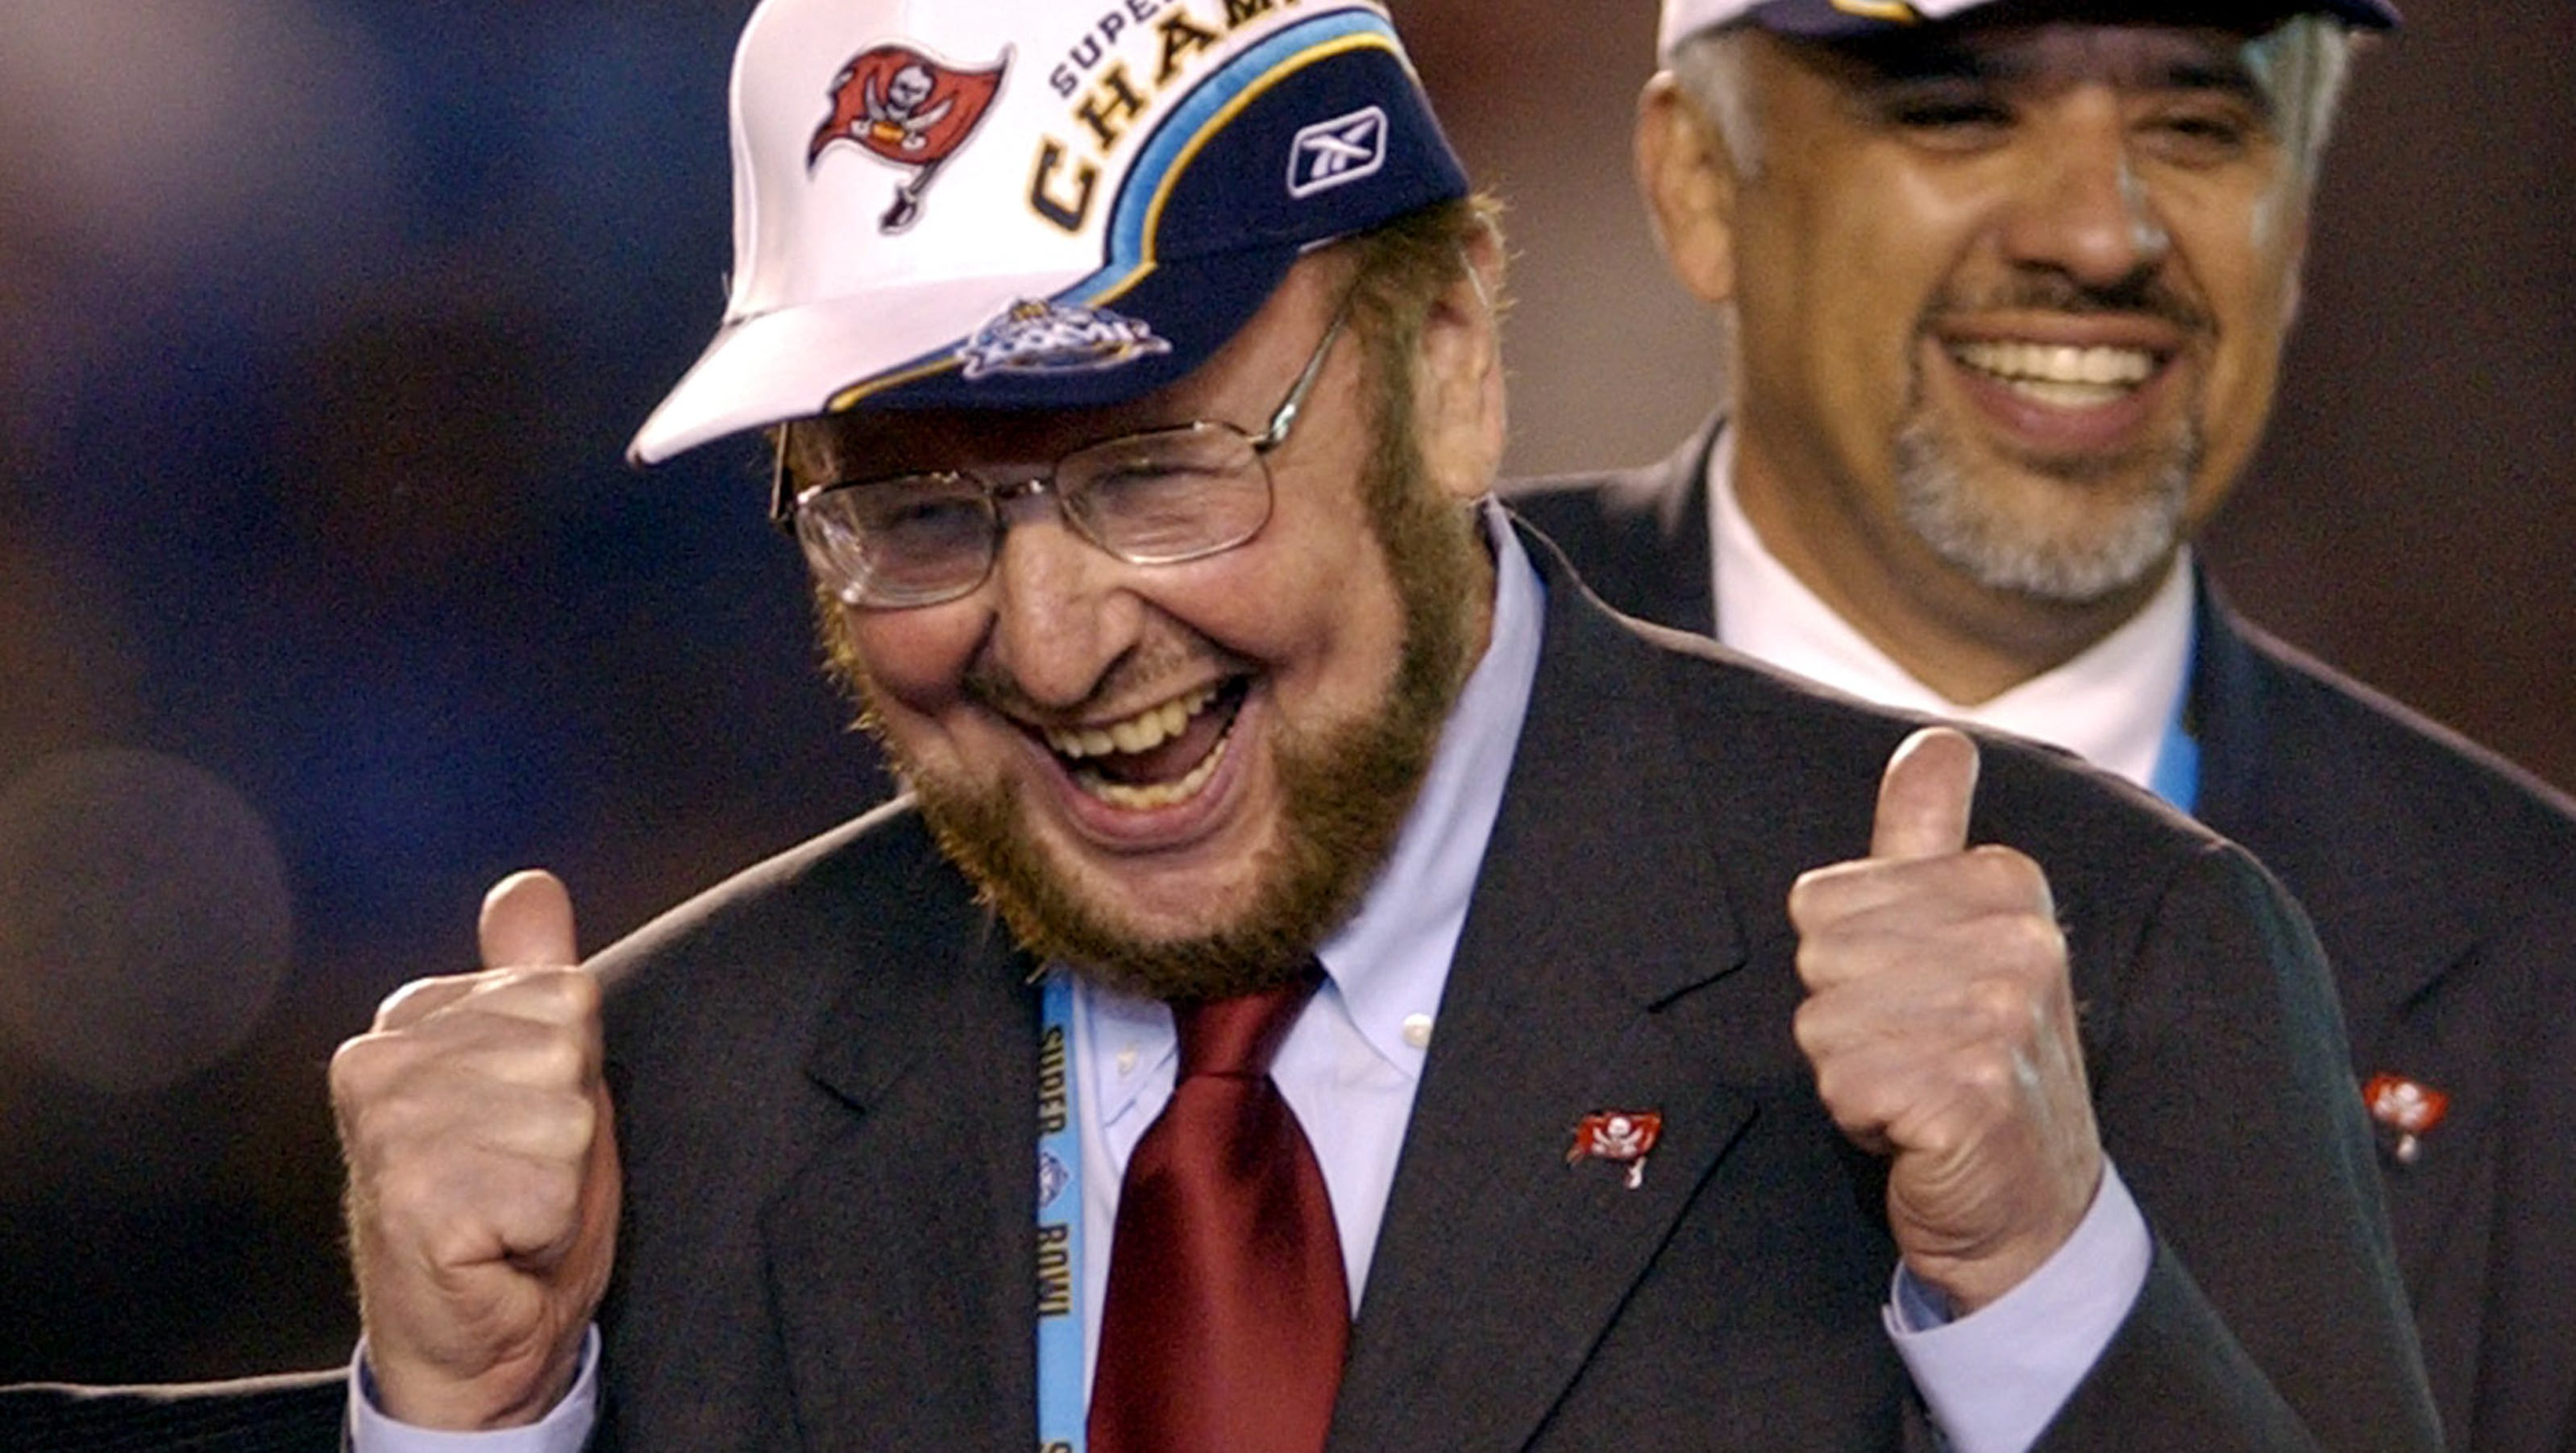 the manchester united buccaneers Malcolm glazer, the american billionaire who rose to prominence as the owner of the tampa bay buccaneers football team in the us and britain's manchester united.